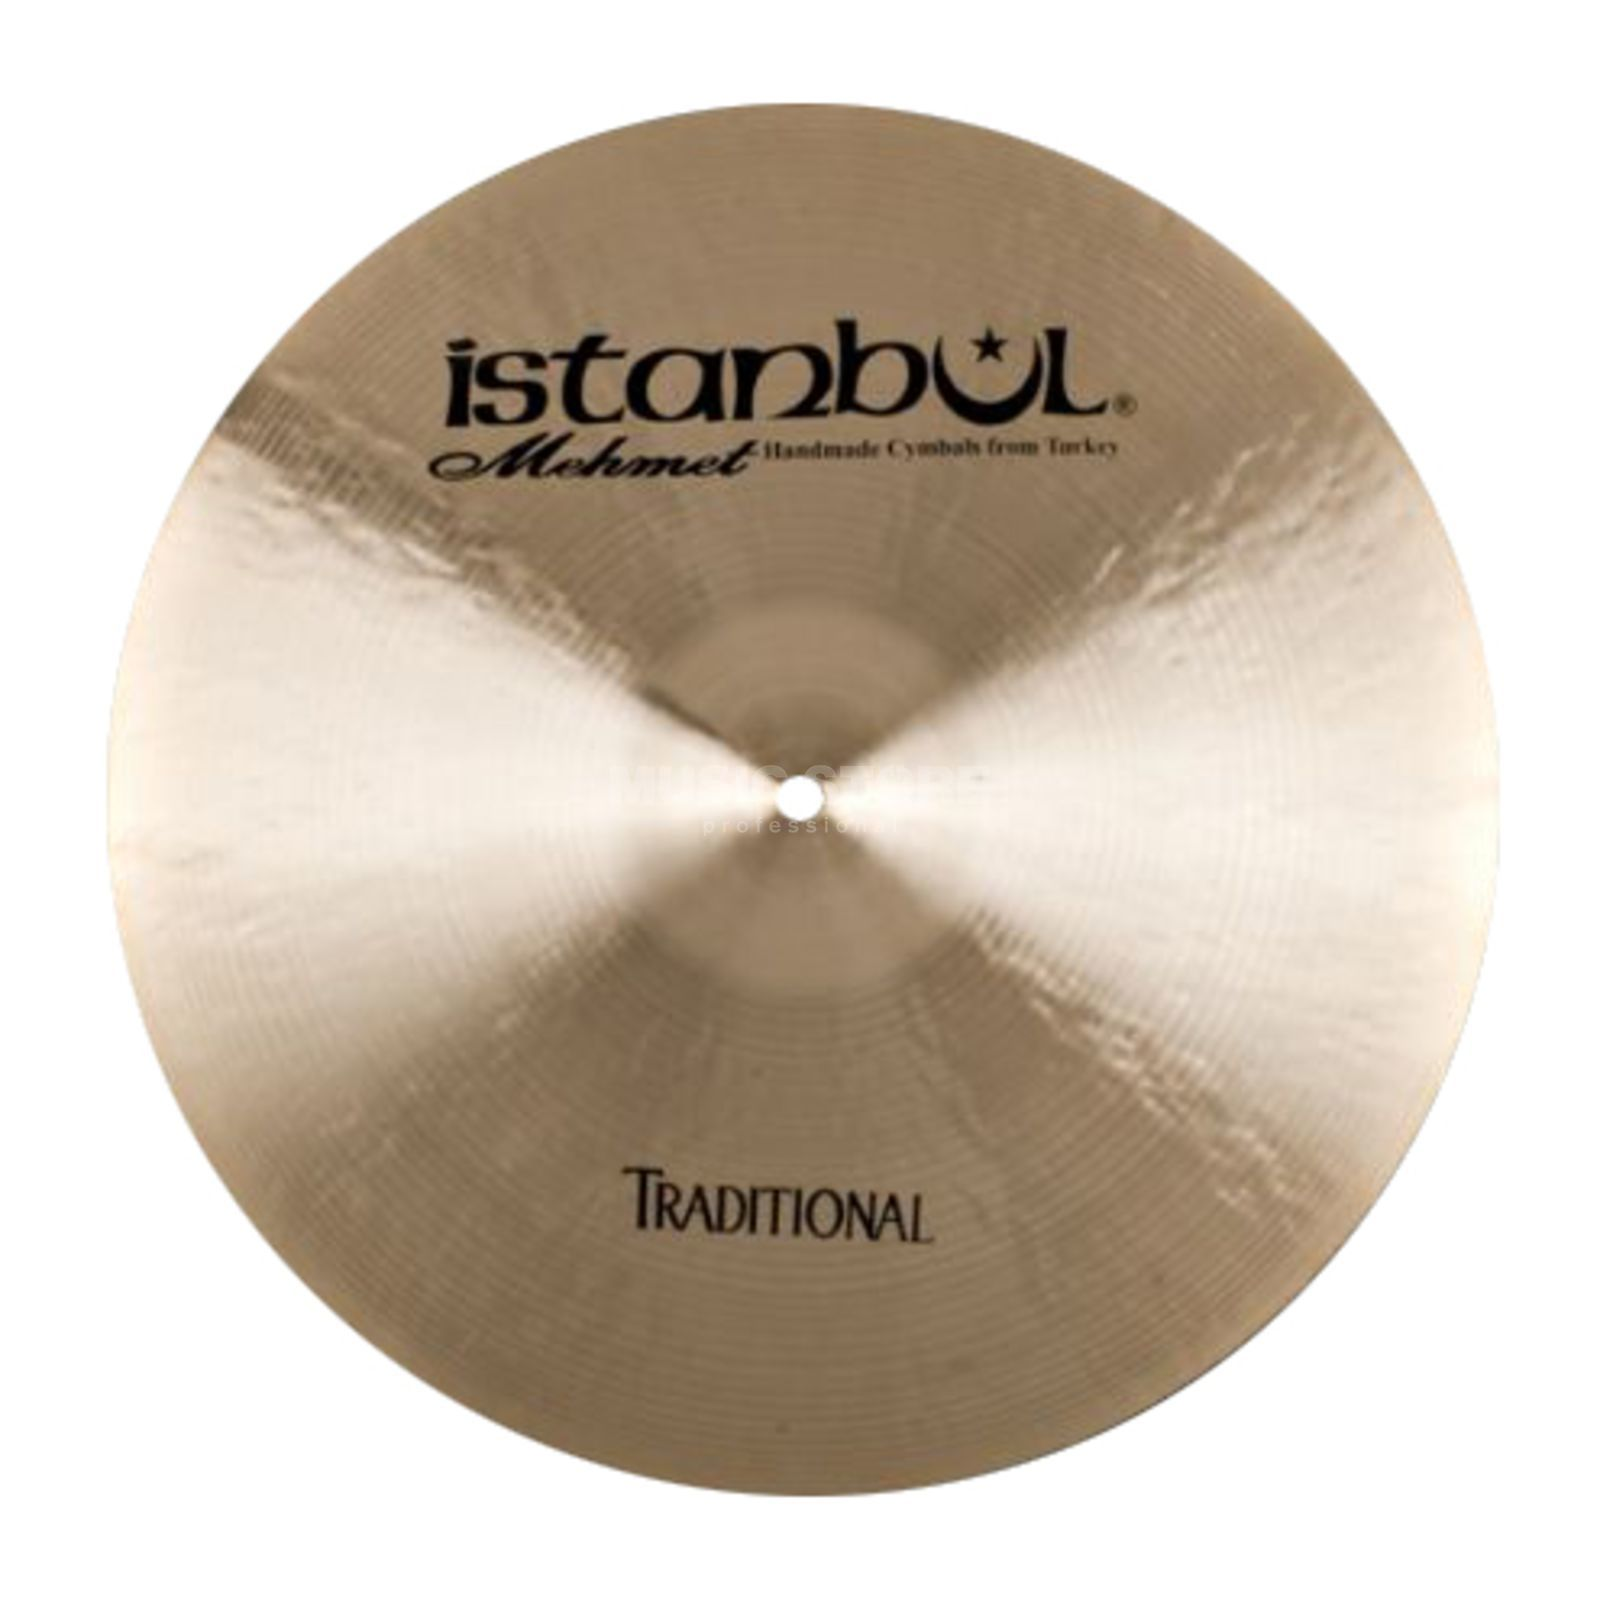 "Istanbul Traditional Heavy Crash 14"", CVY14 Produktbild"